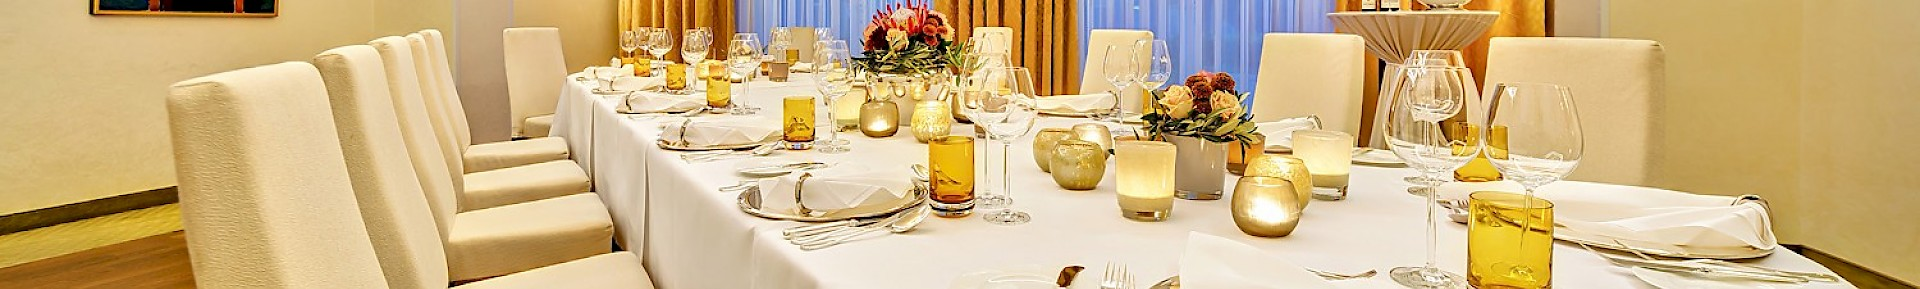 Celebrate in one of our stylish function rooms